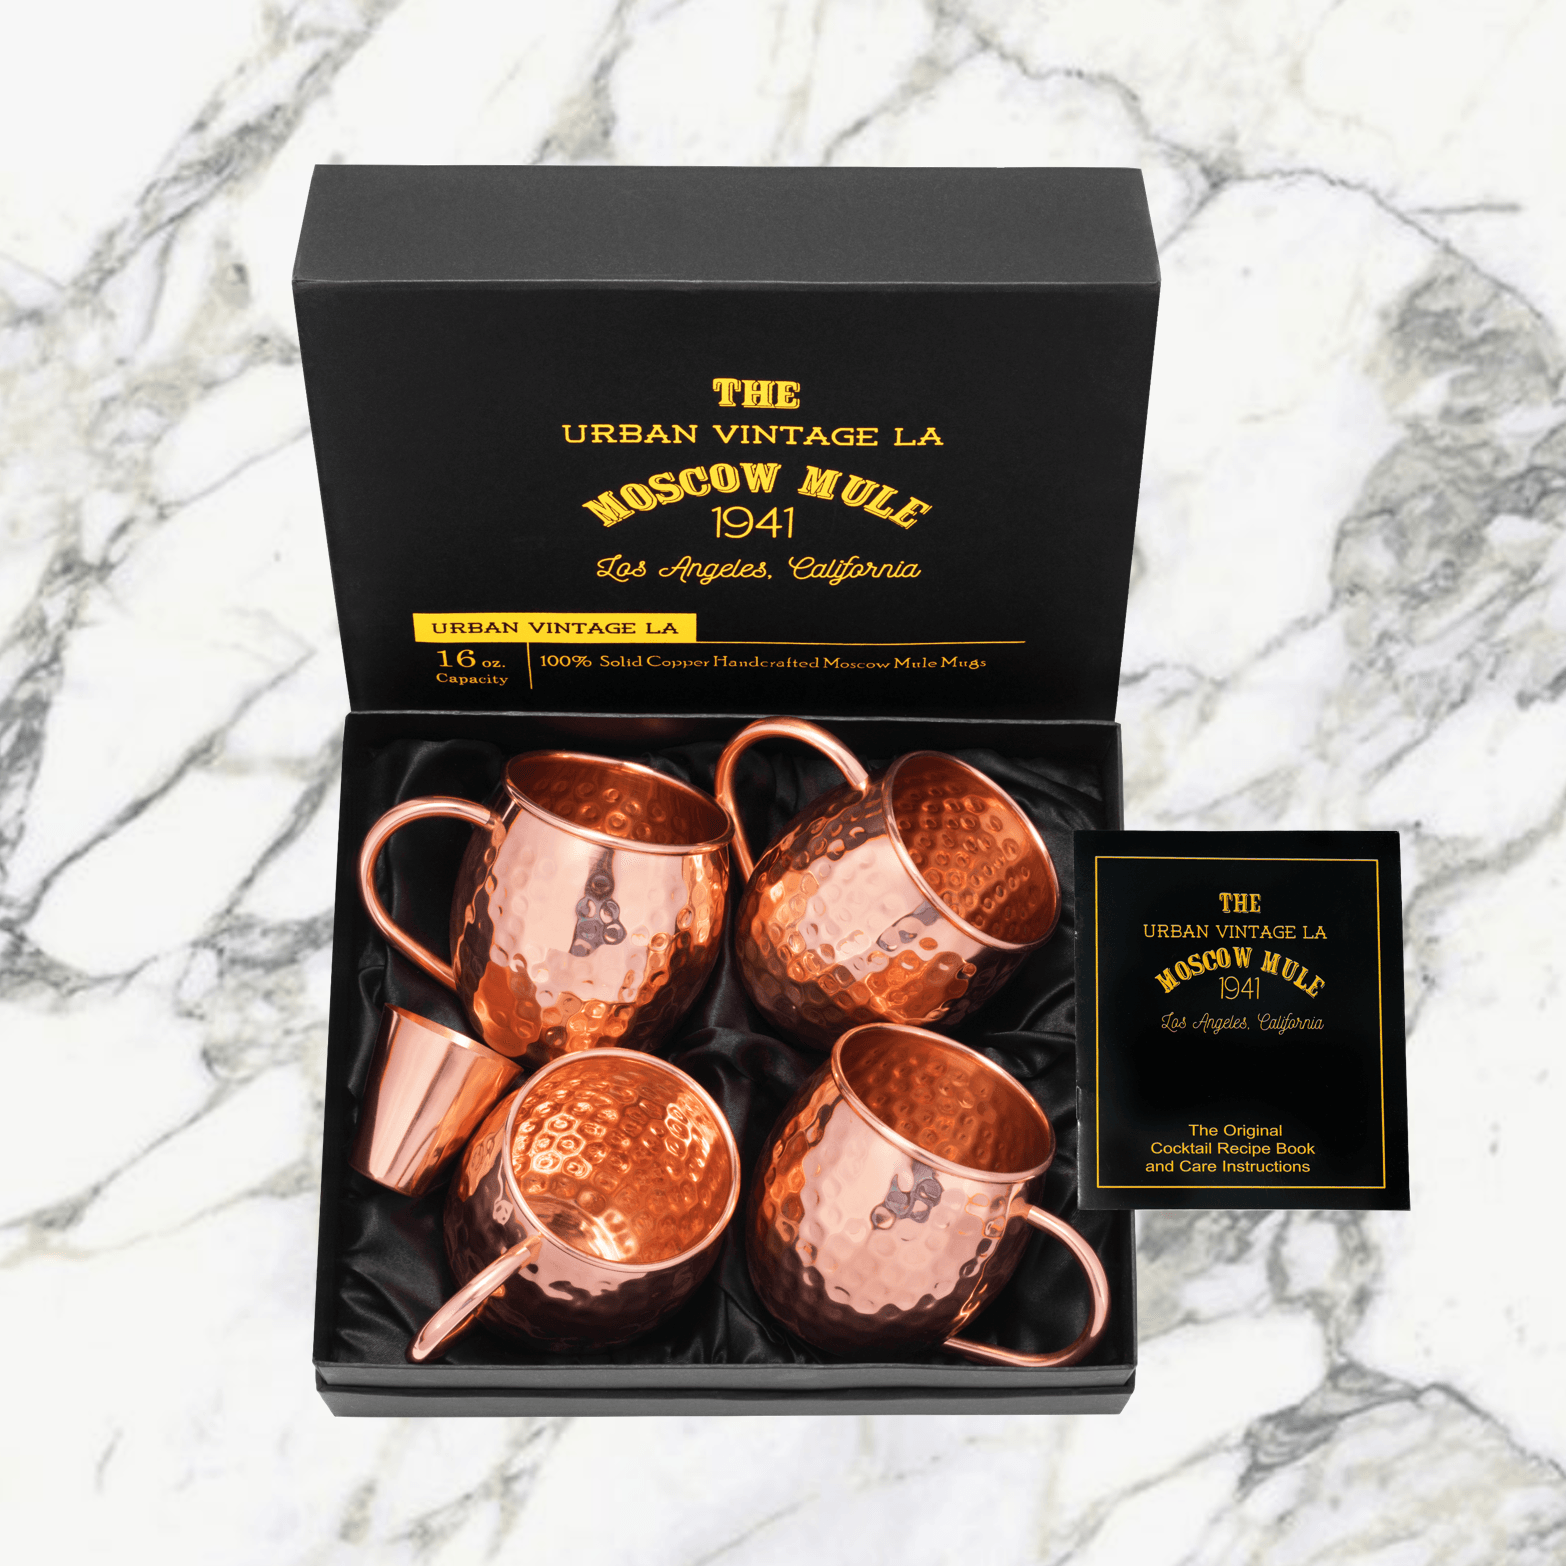 Urban Vintage LA Moscow Mule Copper Mugs With Shotglass in Gift Box With Illustrated Recipe Book and Care Guide